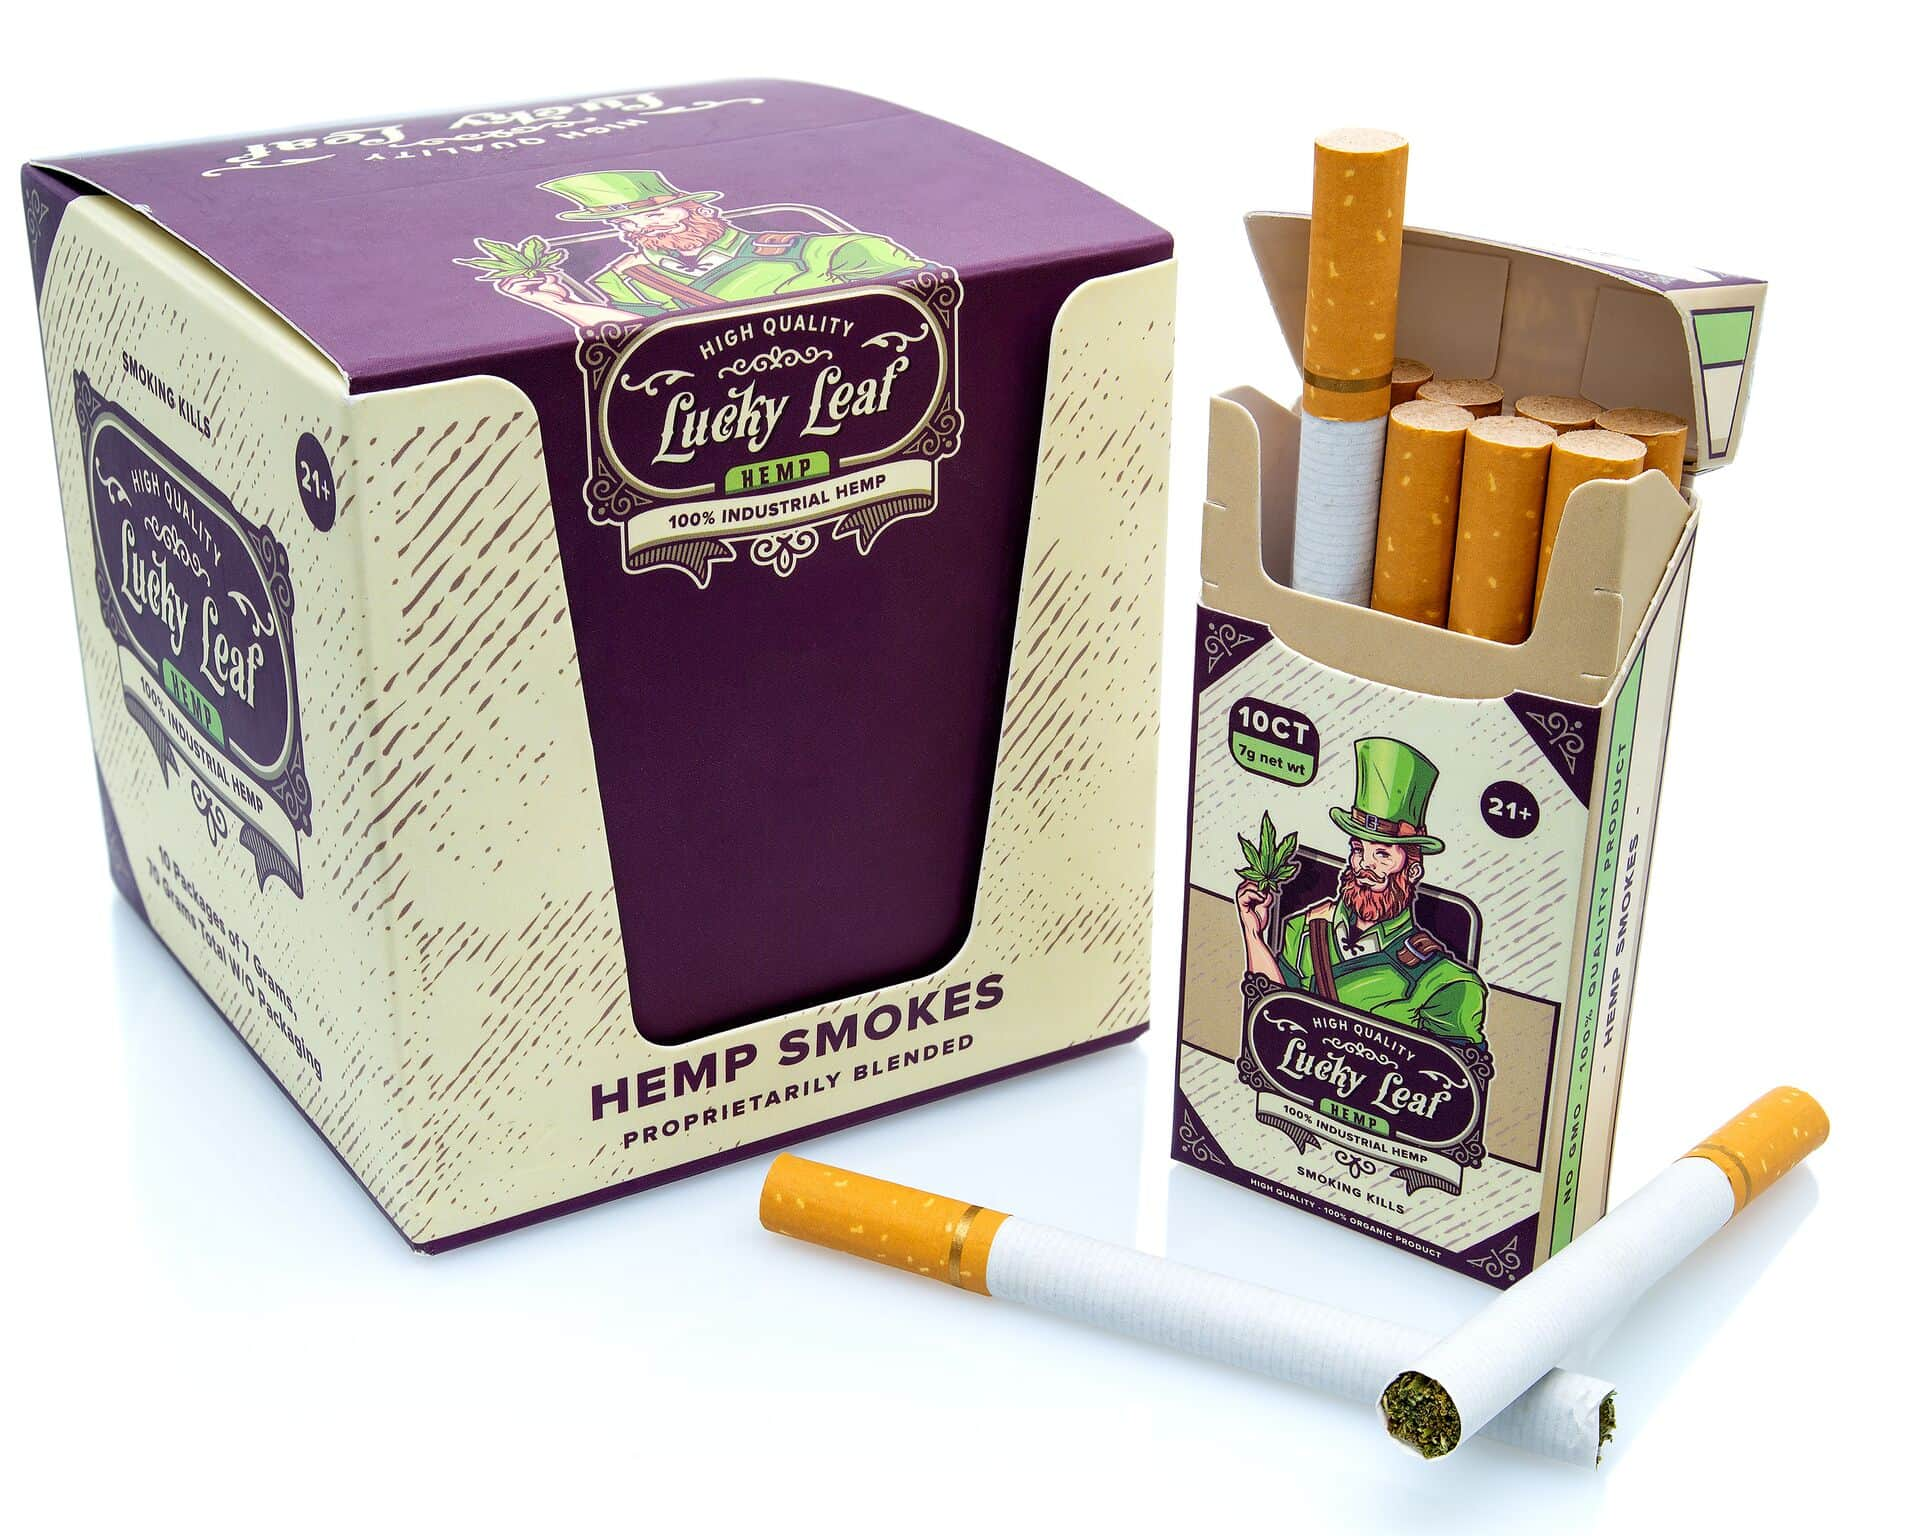 lucky leaf hemp cigarettes for sale